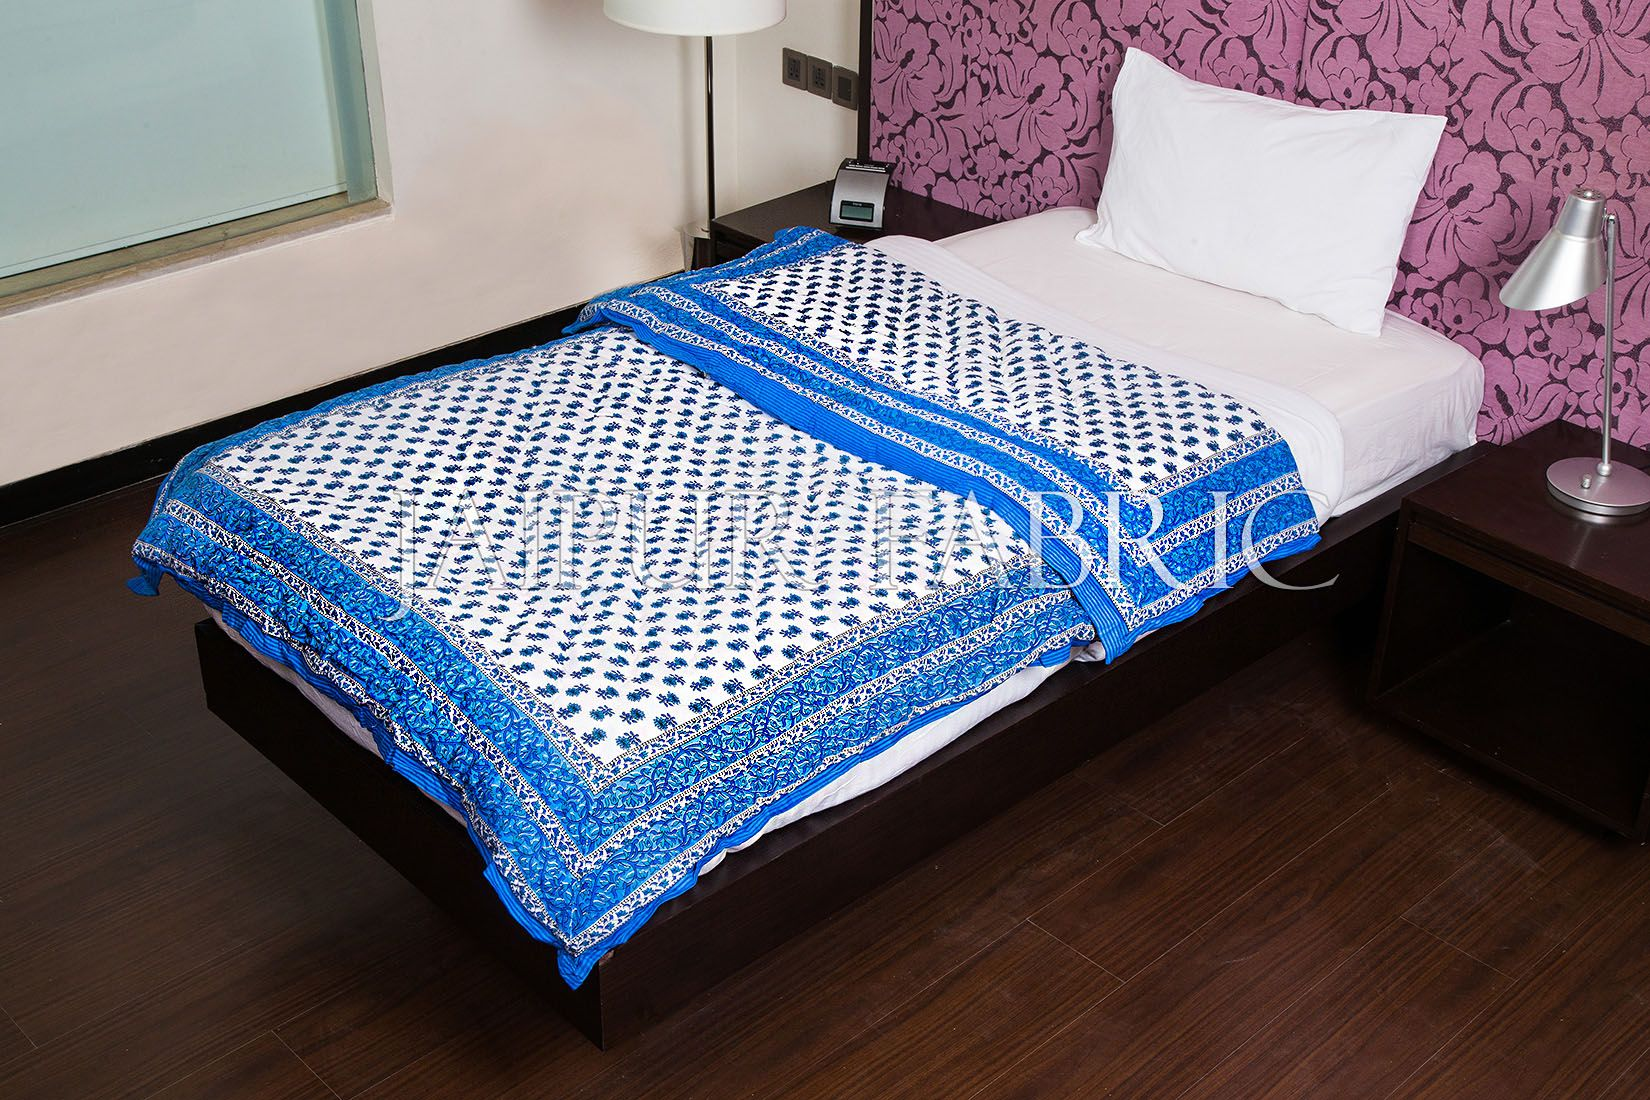 Blue Floral Print Cotton Handmade Single Bed Jaipuri Quilt